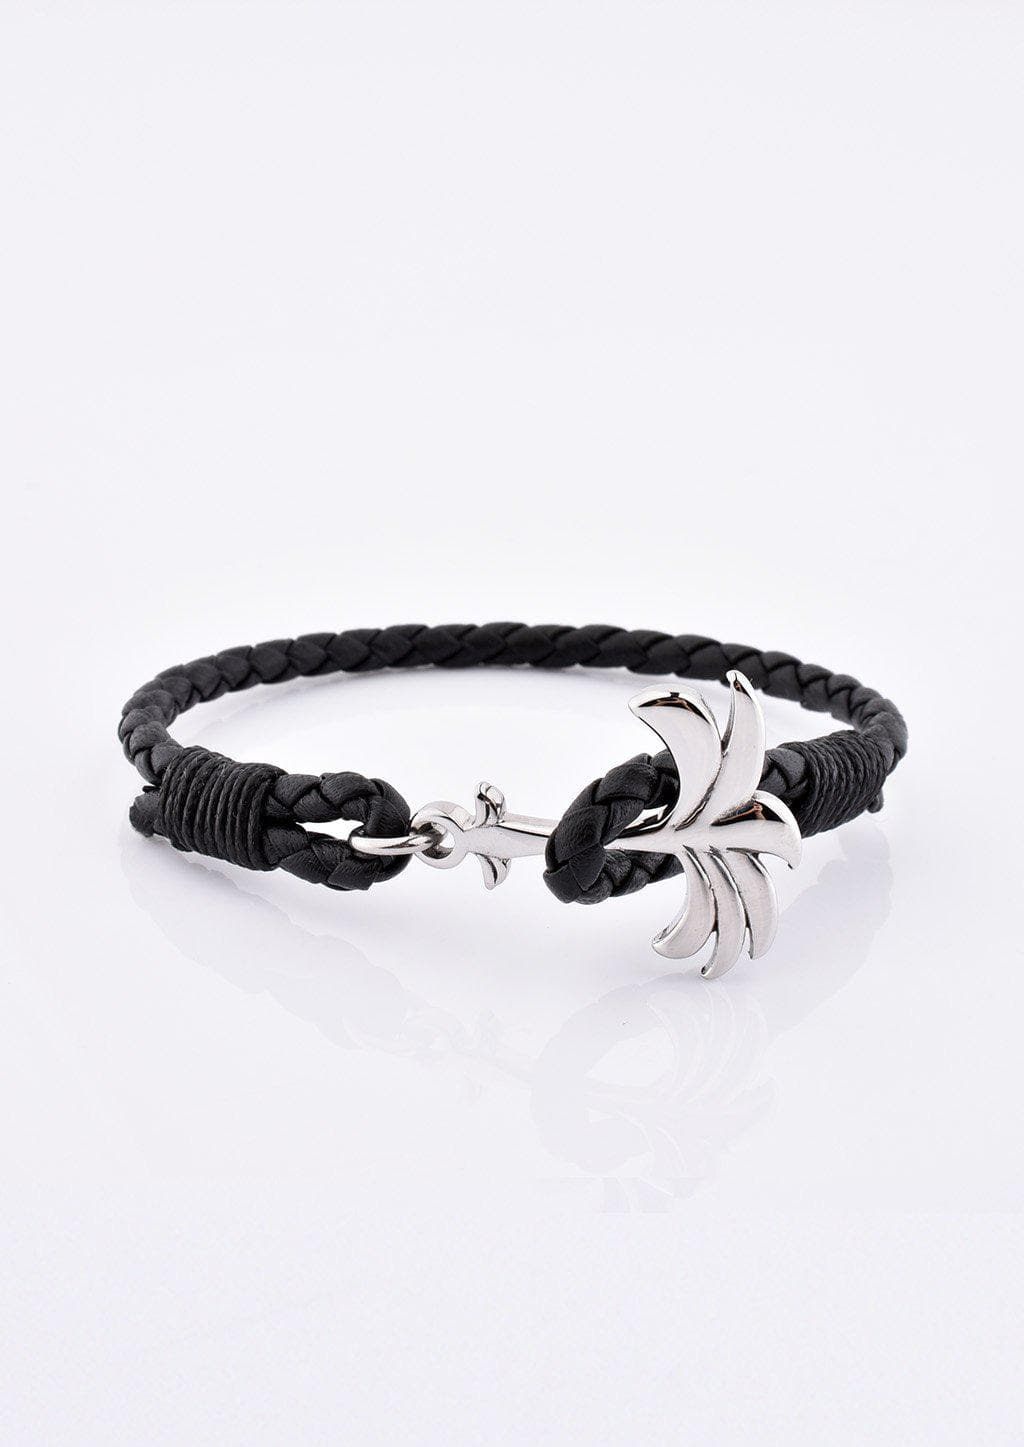 Starlight - Season two Palm anchor bracelet with black leather.